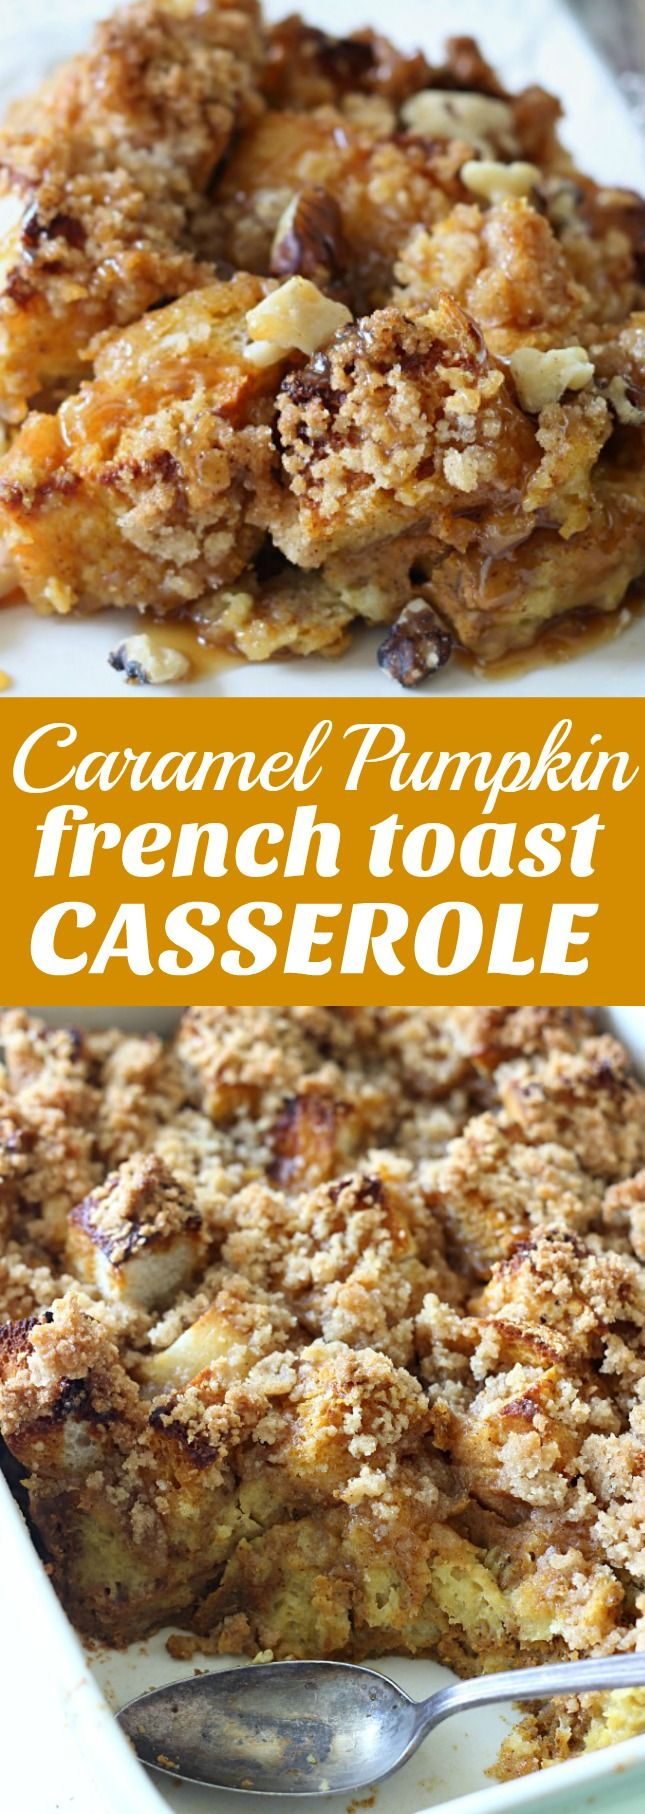 This Caramel Pumpkin French Toast Casserole is my family's favorite fall breakfast! Perfect for a special breakfast or brunch. #CartwheelForCreamer #ad